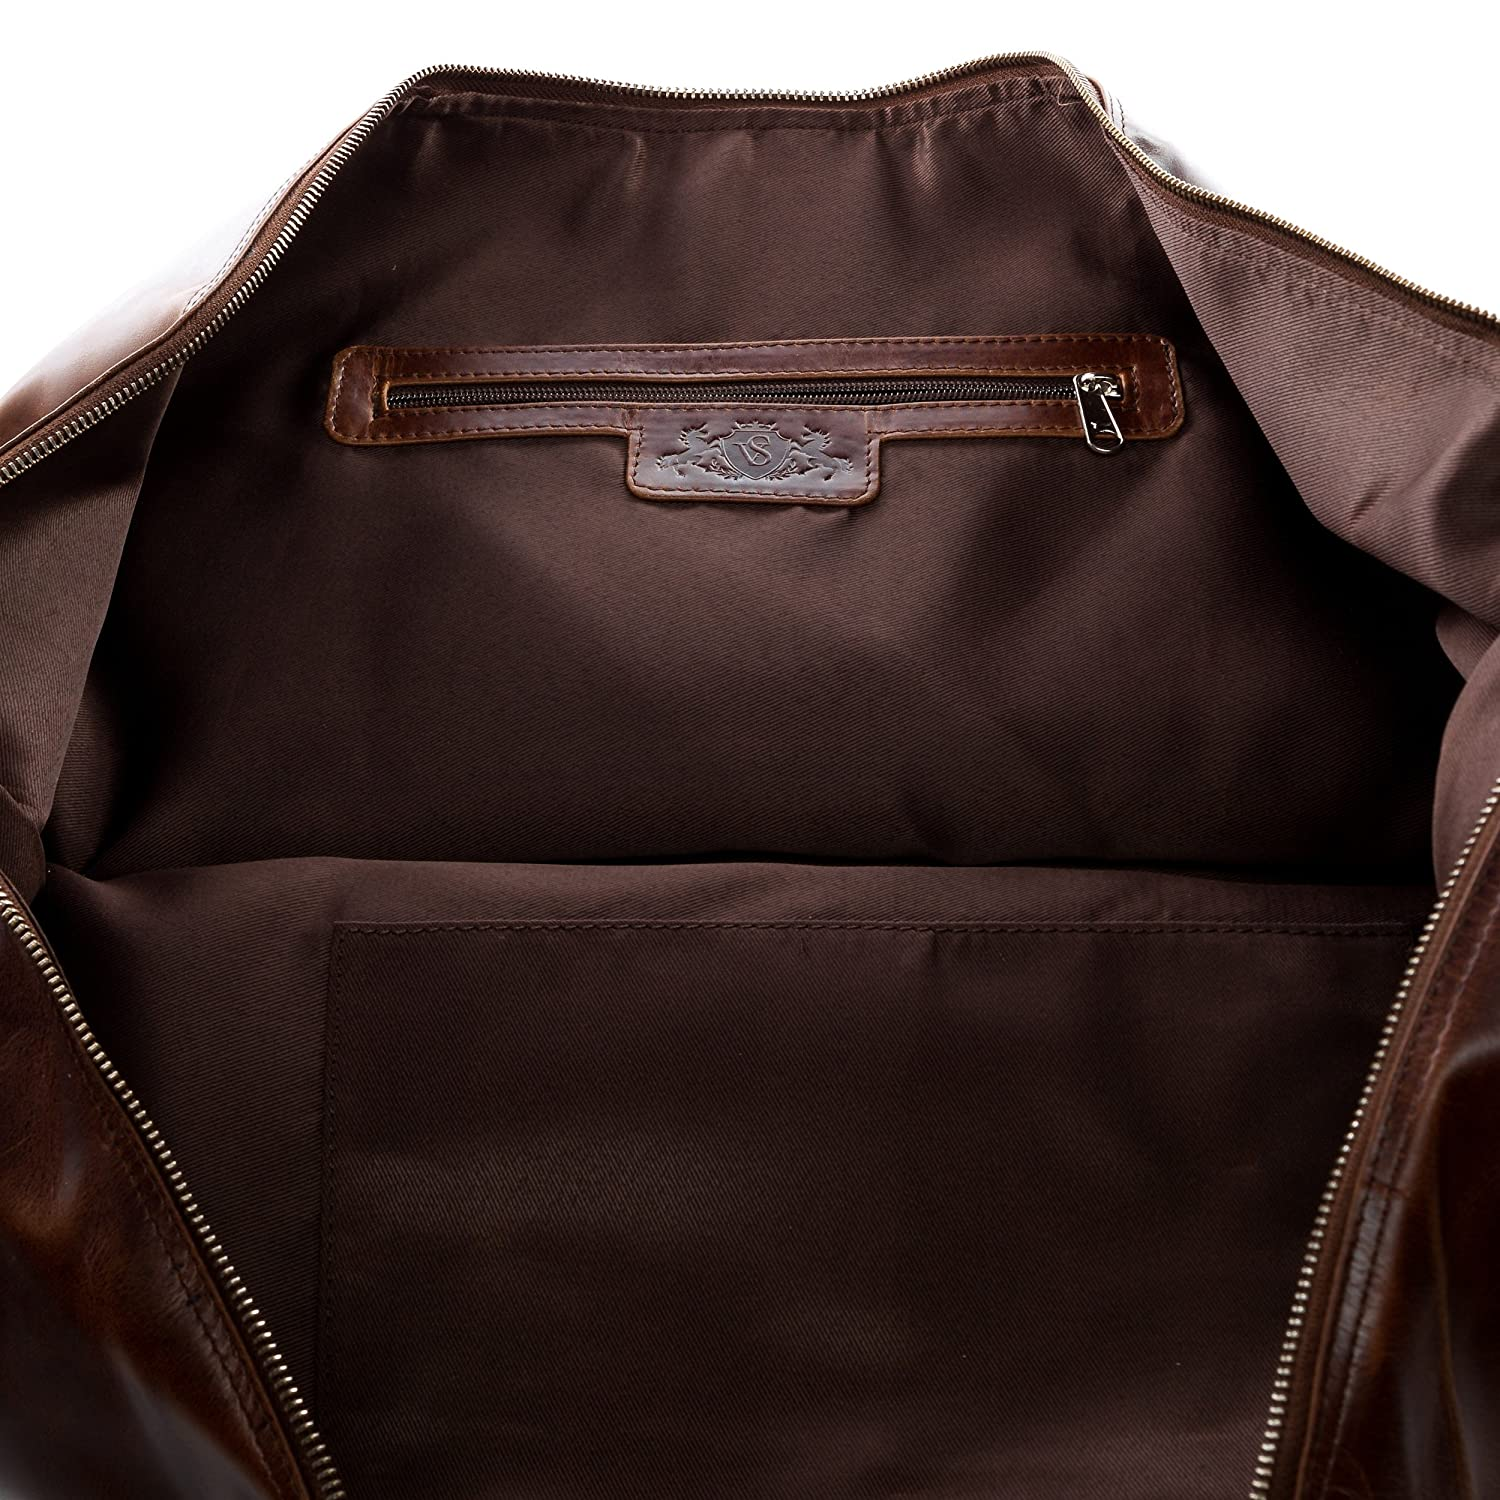 SID /& VAIN Sac Voyage Cuir fourre-Tout Besace Week-End XL Grand Sac Homme Sport Bagages Cabine /à Main Marron